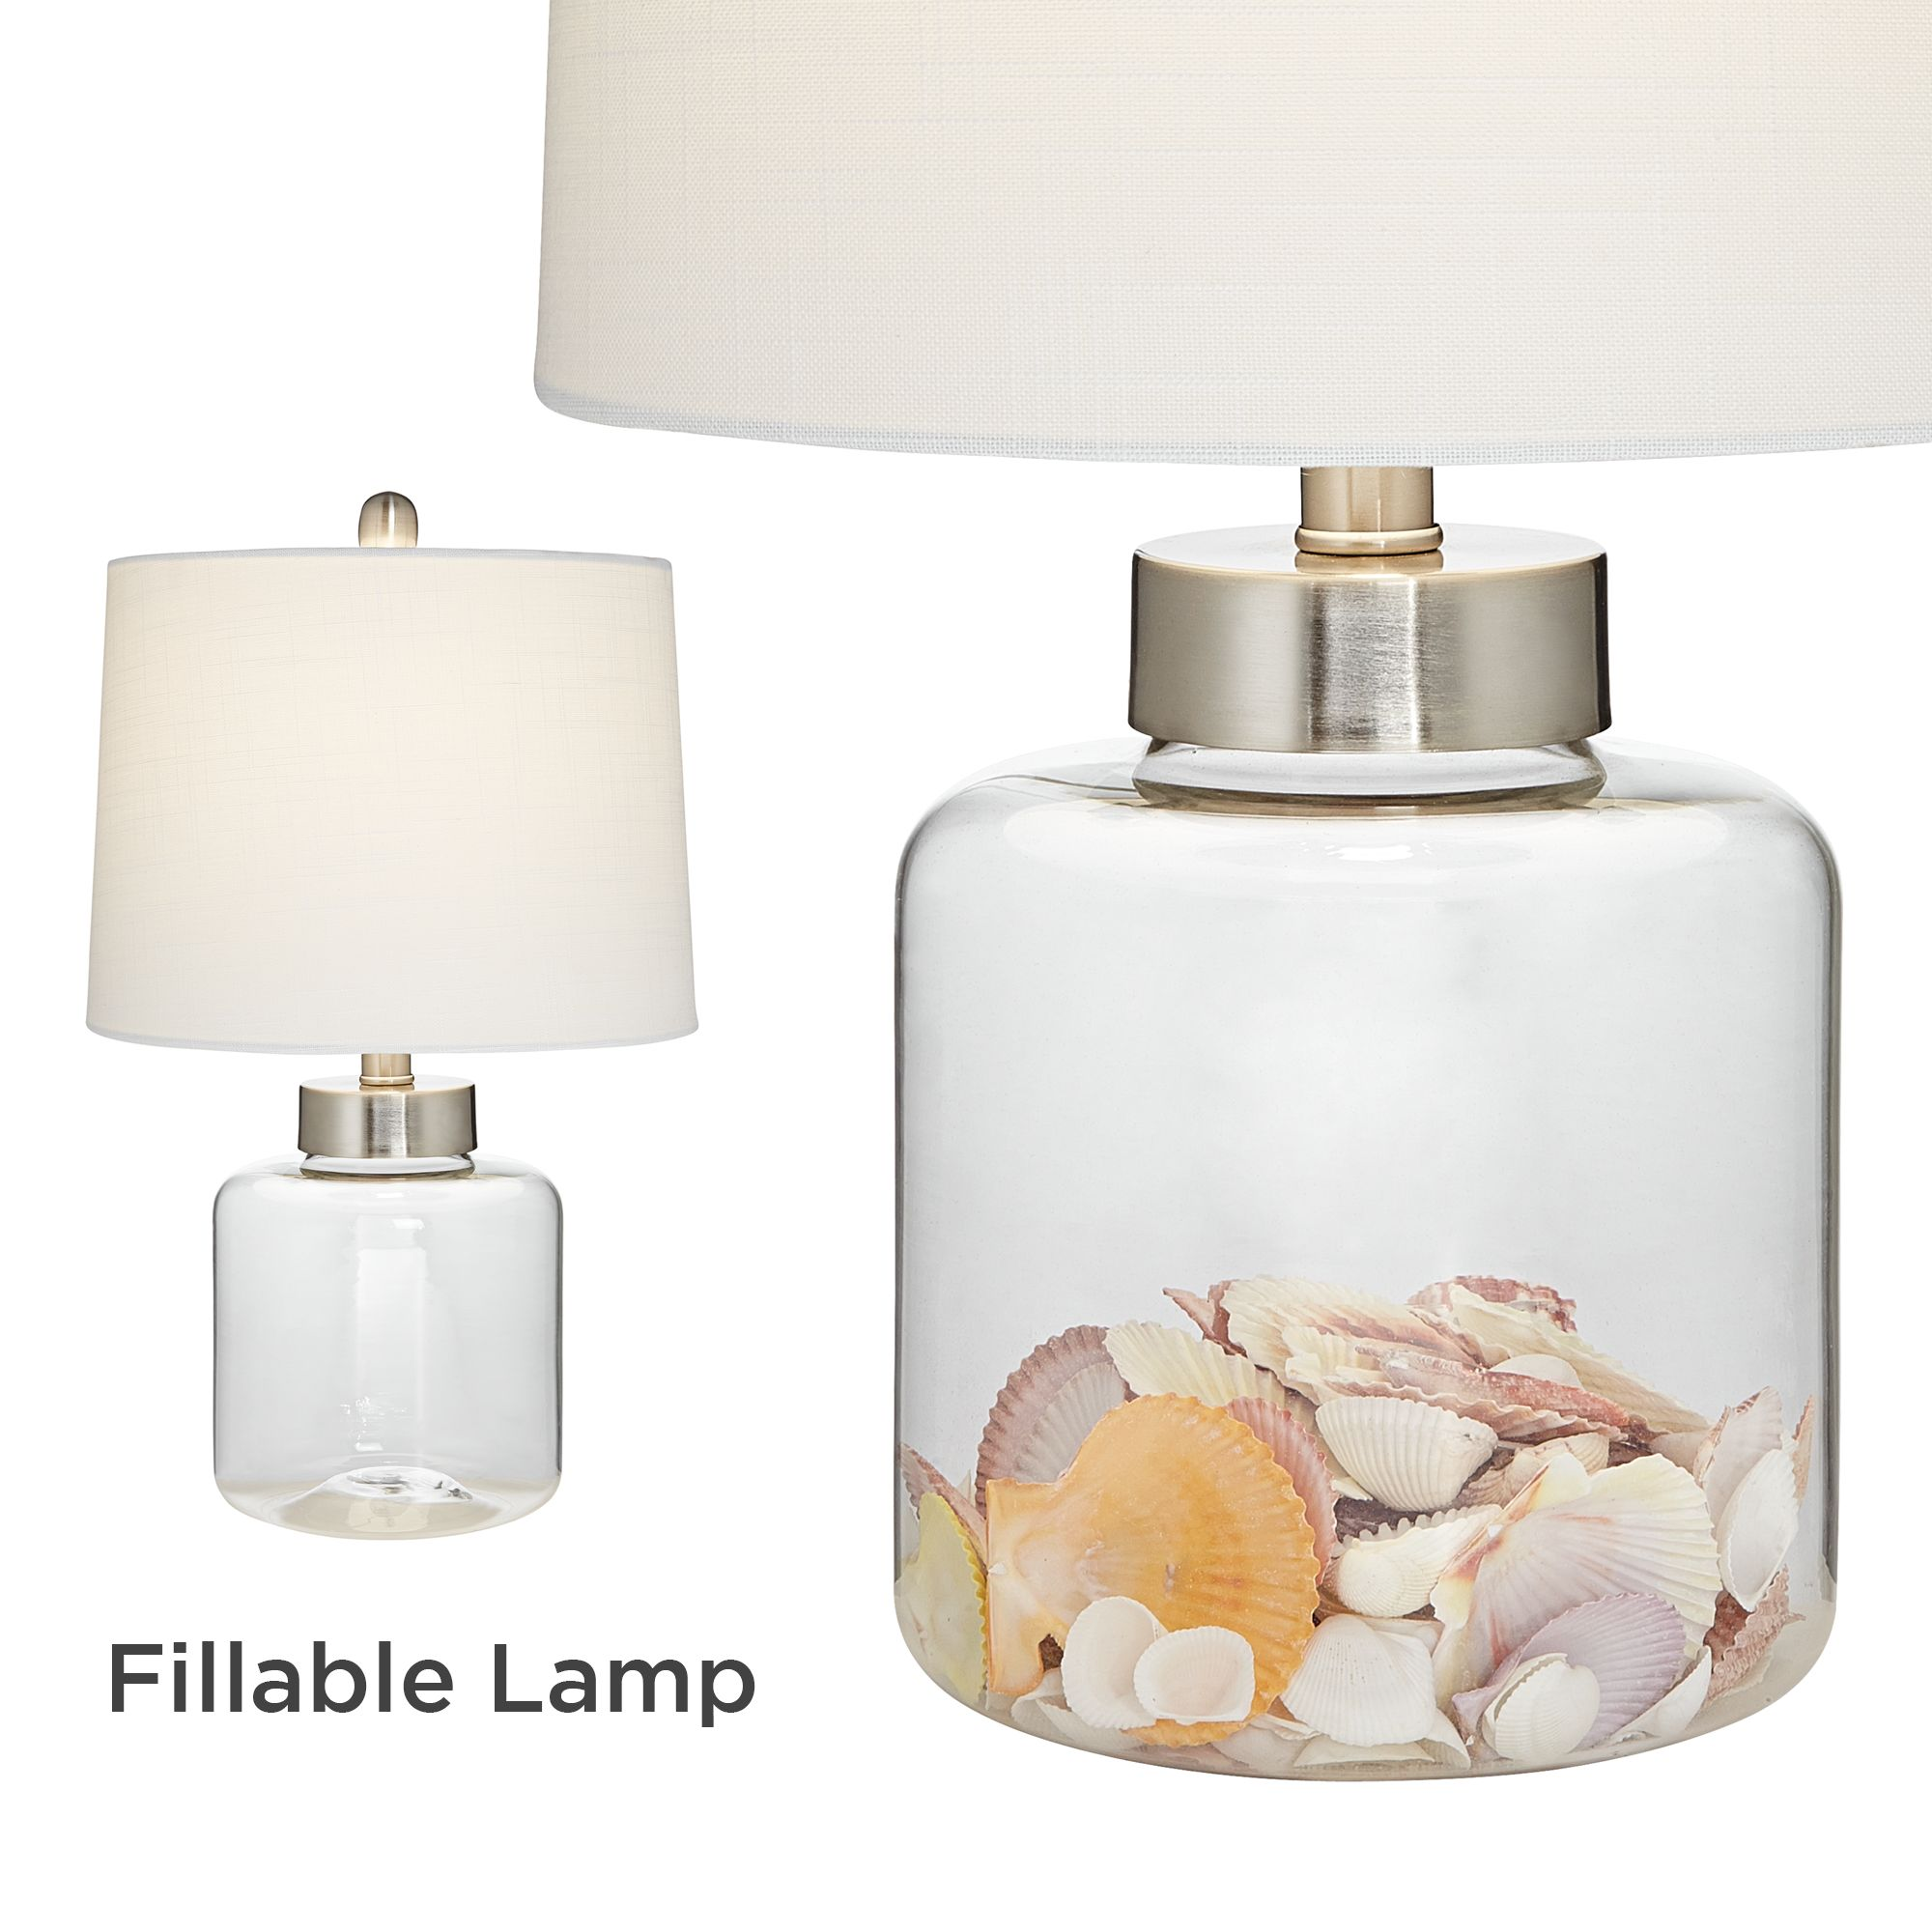 Coastal Lamps 360 Lighting Coastal Accent Table Lamps Set Of 2 Small Clear Glass Fillable Shells White Drum Shade For Living Room Family Bedroom